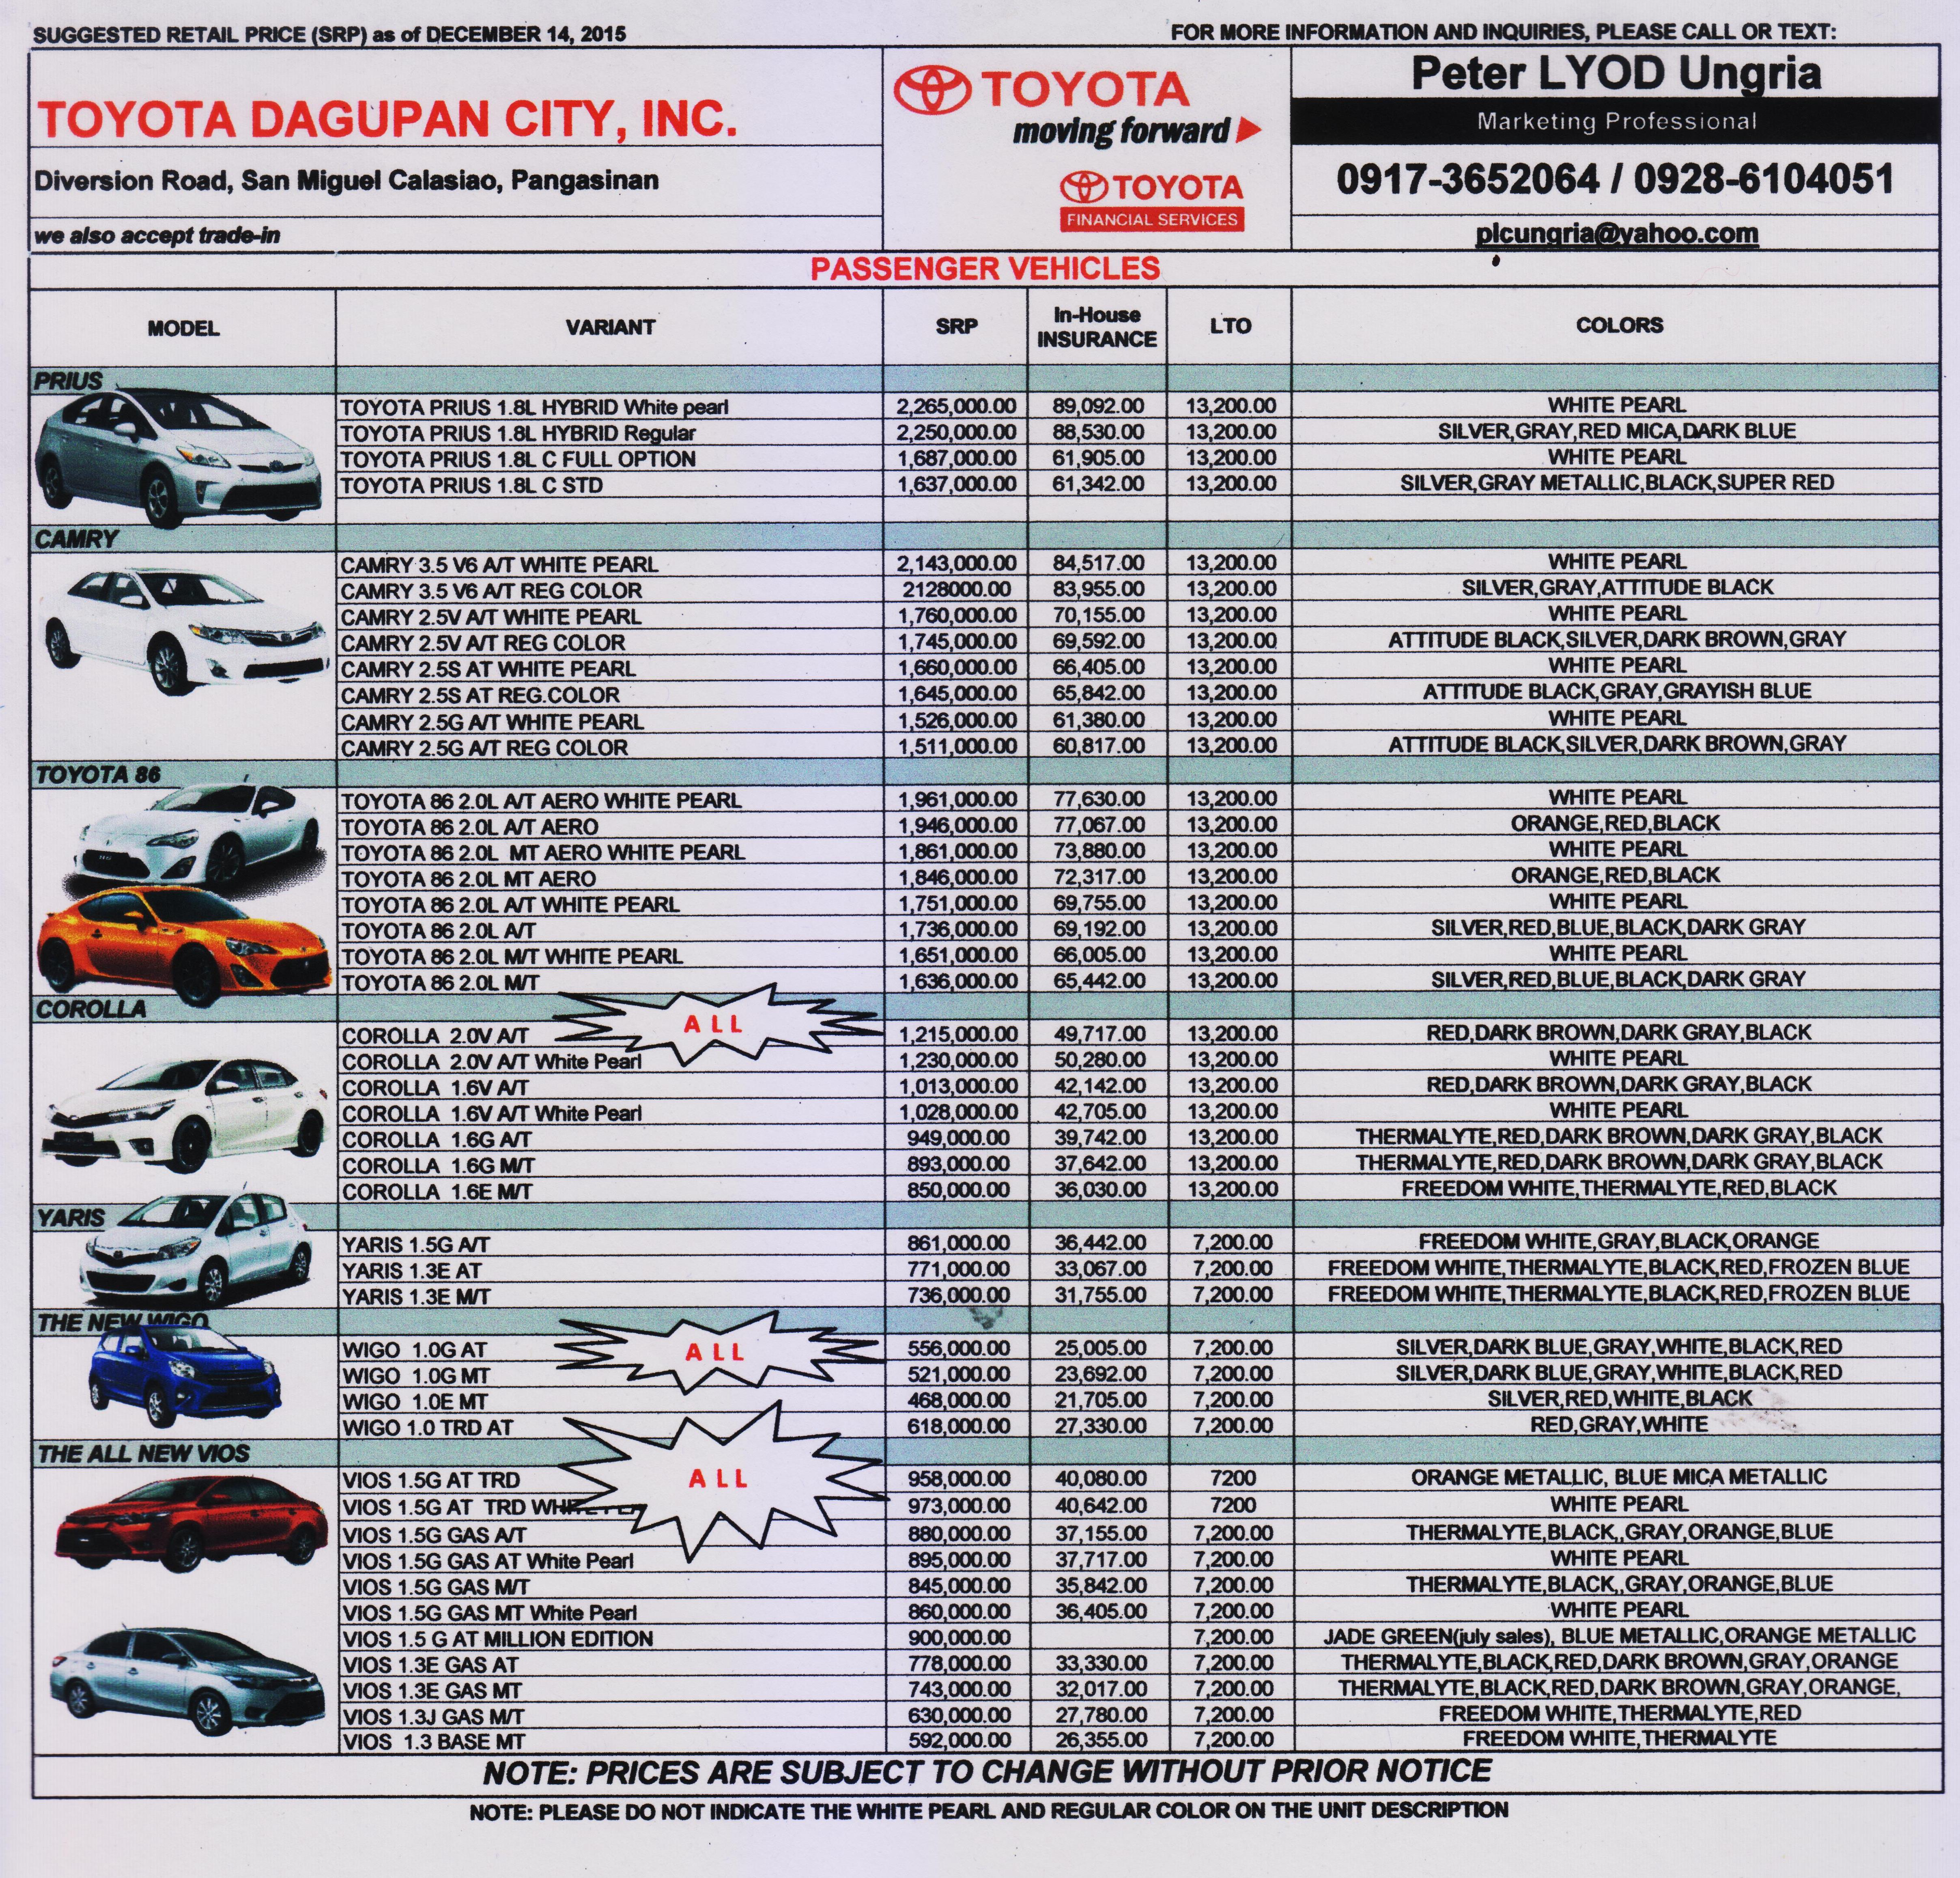 Toyota Fortuner Philippines Price List >> TOYOTA DAGUPAN PRICELIST DECEMBER 2015 TO JANUARY 2016 | TOYOTA DAGUPAN CITY, INC.